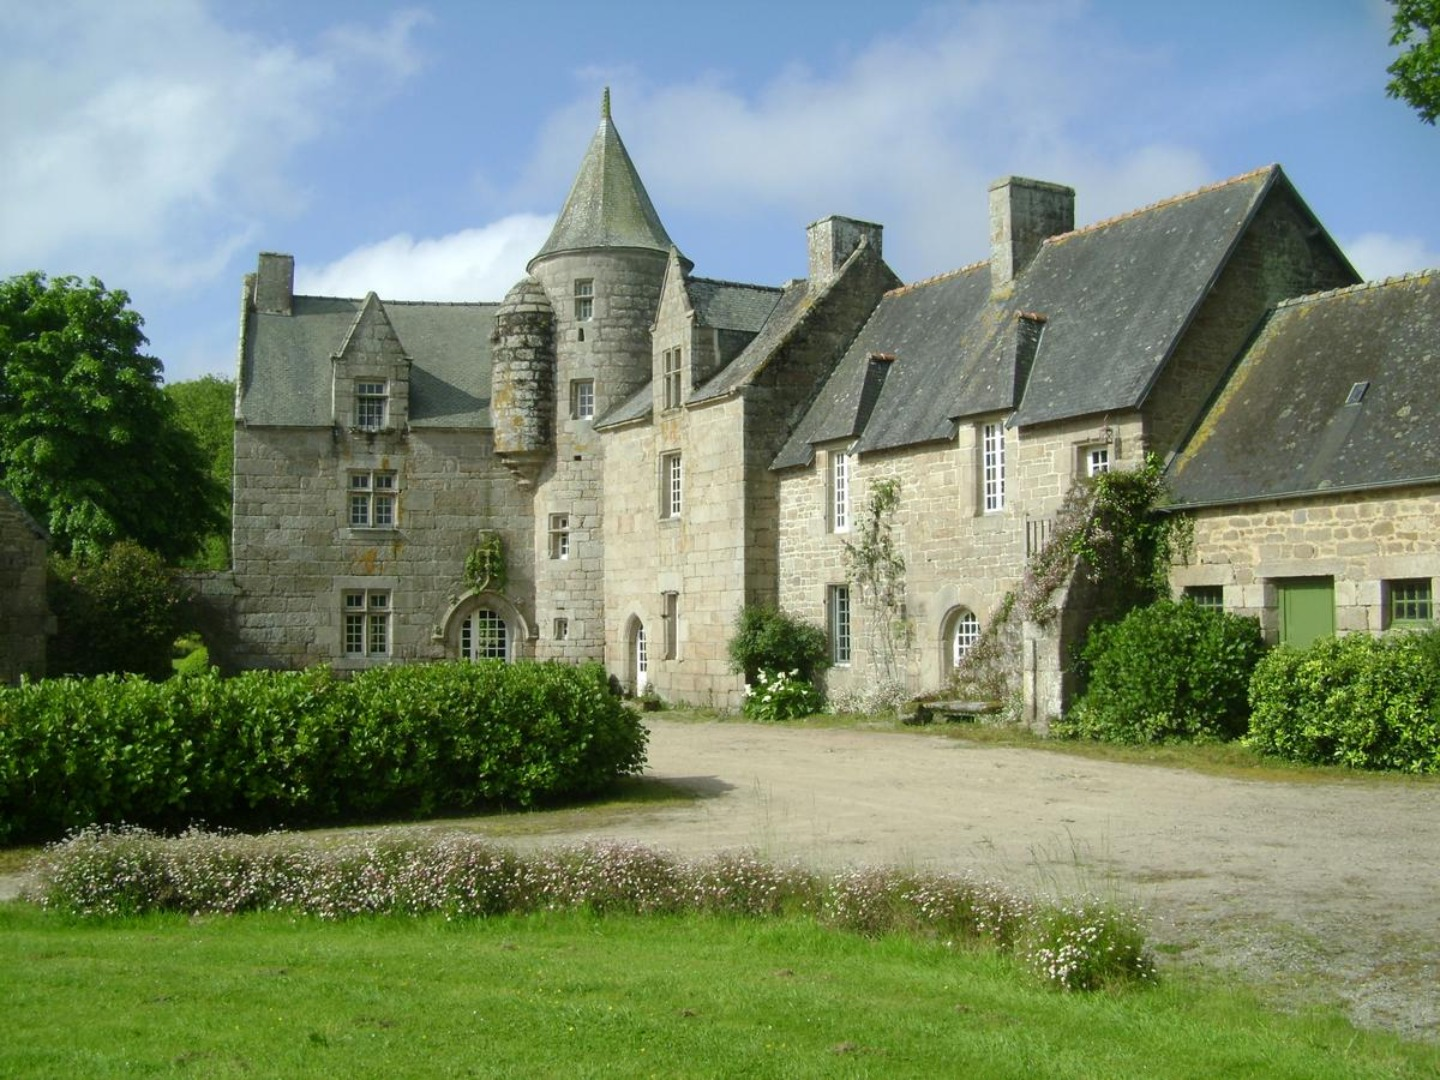 A stone castle next to a brick building at Manoir de Kerguereon.